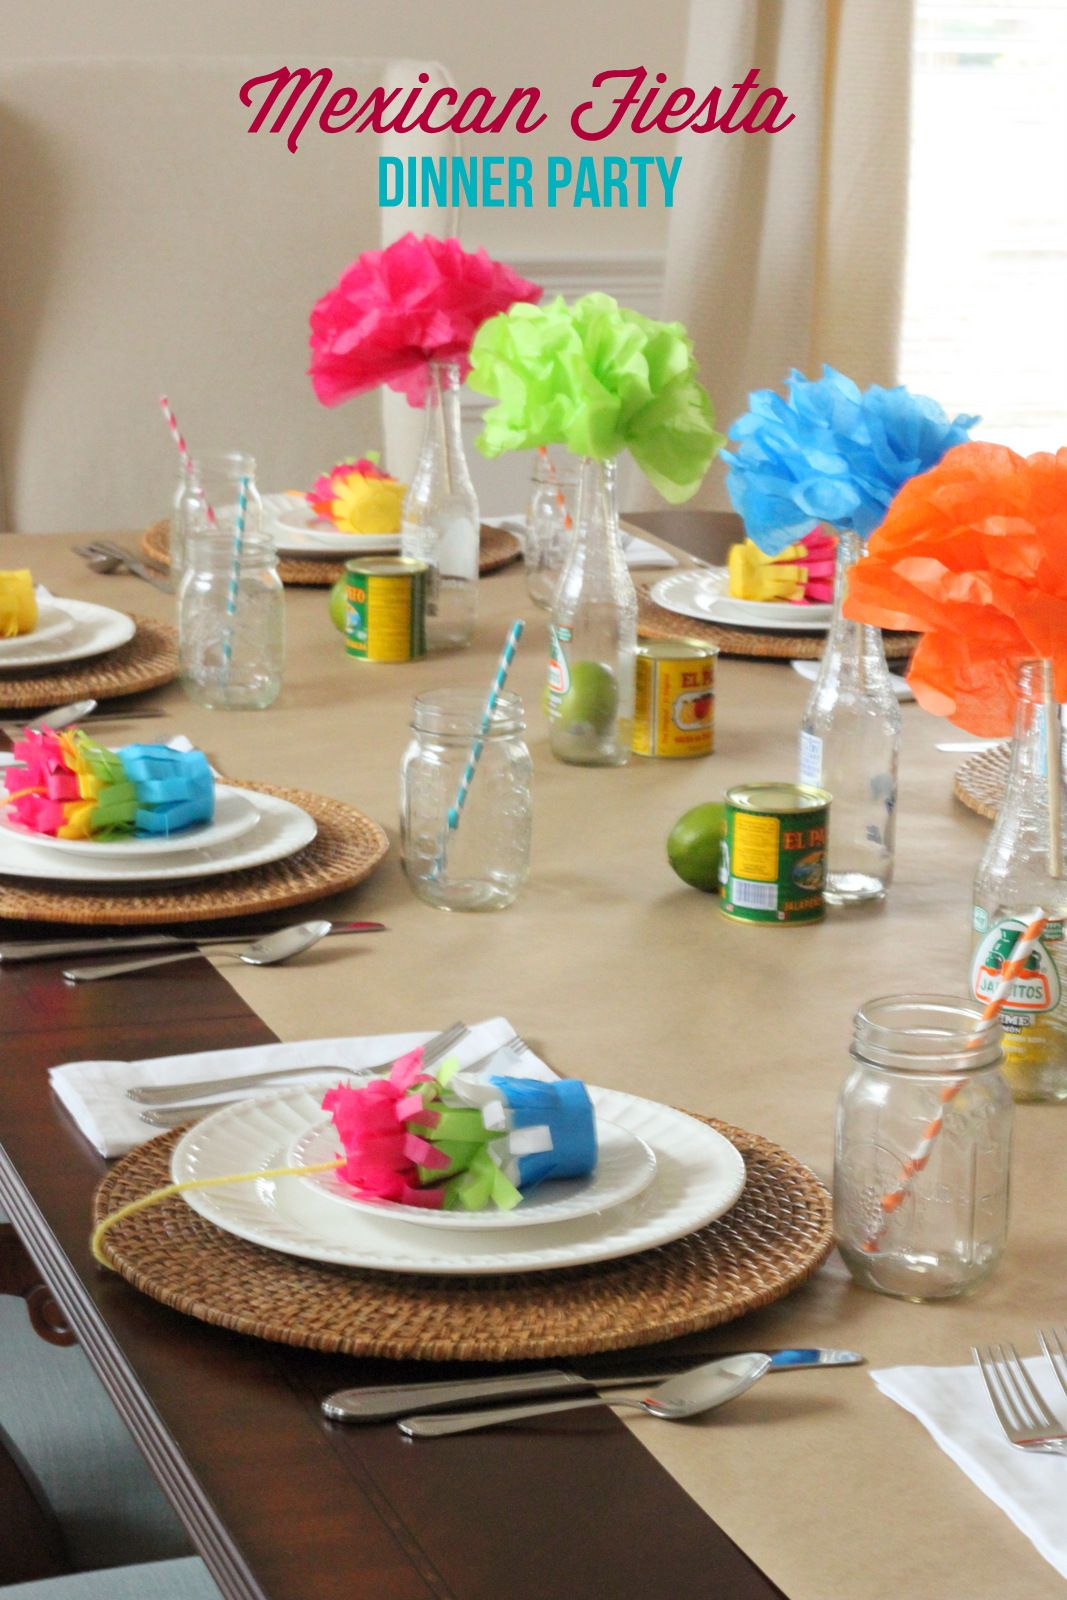 Dinner table with mexican food - Dinner Party Ideas Mexican Fiesta Party Mirabelle Creations